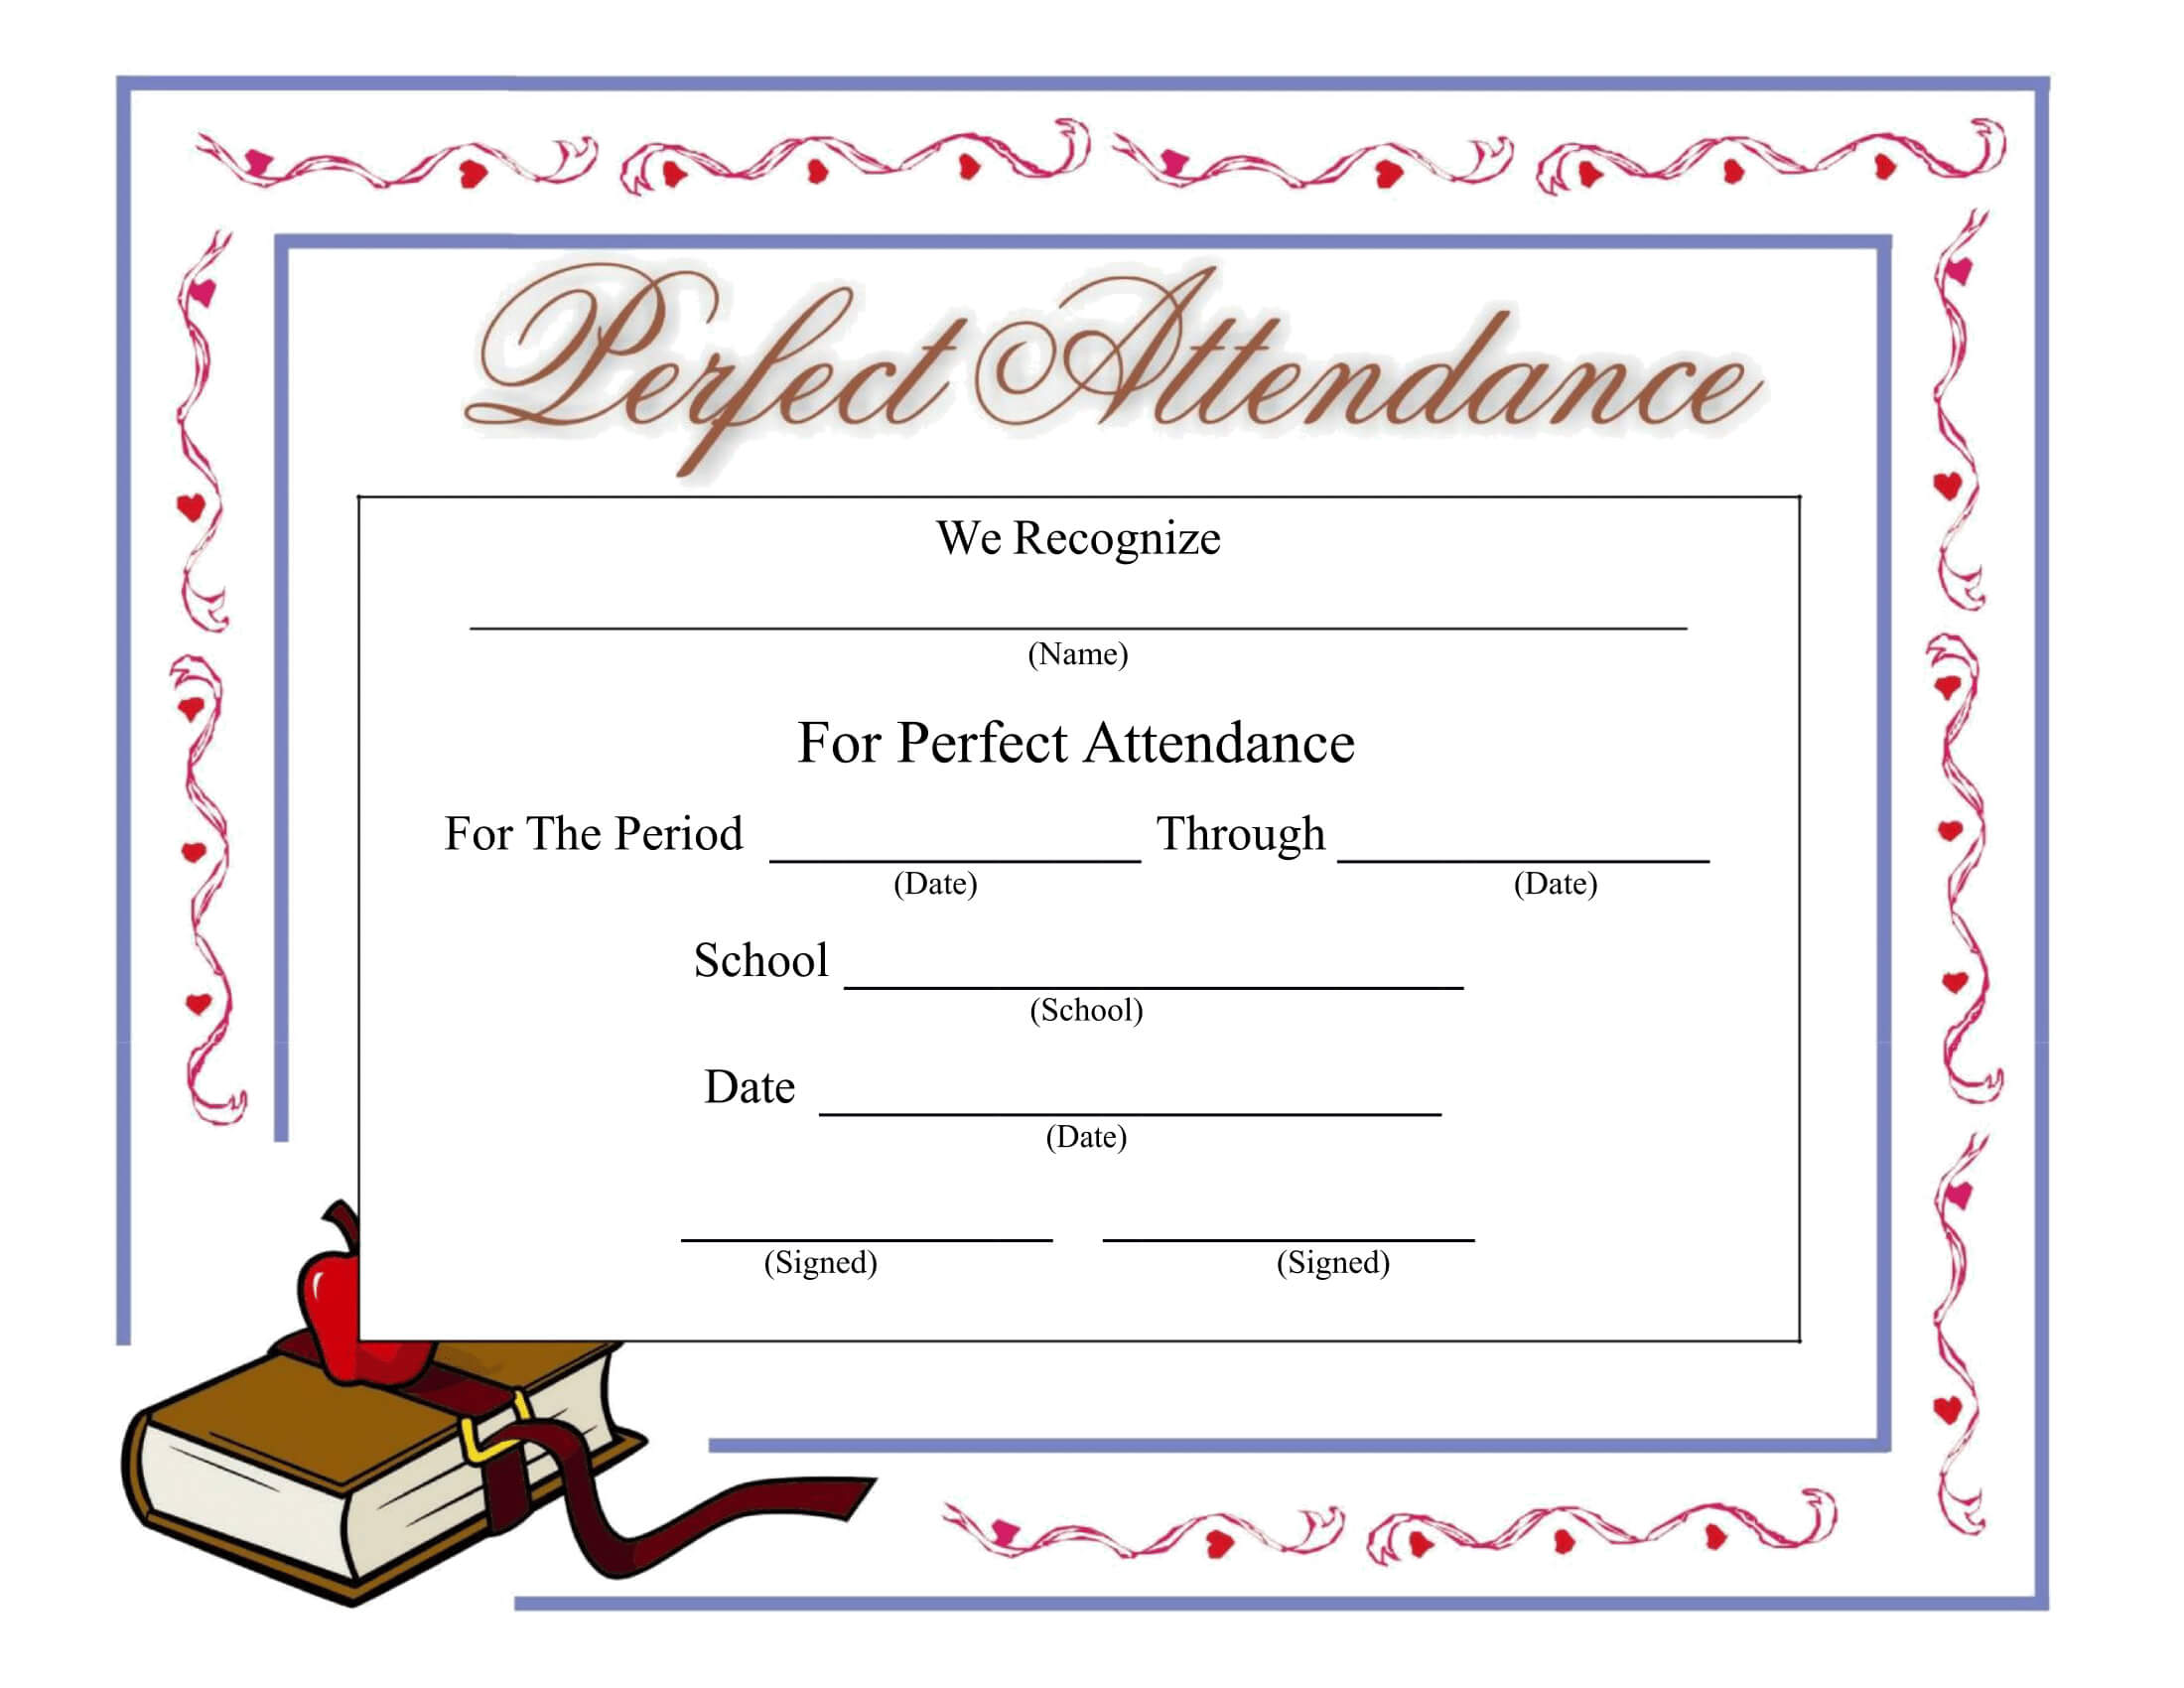 Perfect Attendance Certificate - Download A Free Template Within Perfect Attendance Certificate Free Template